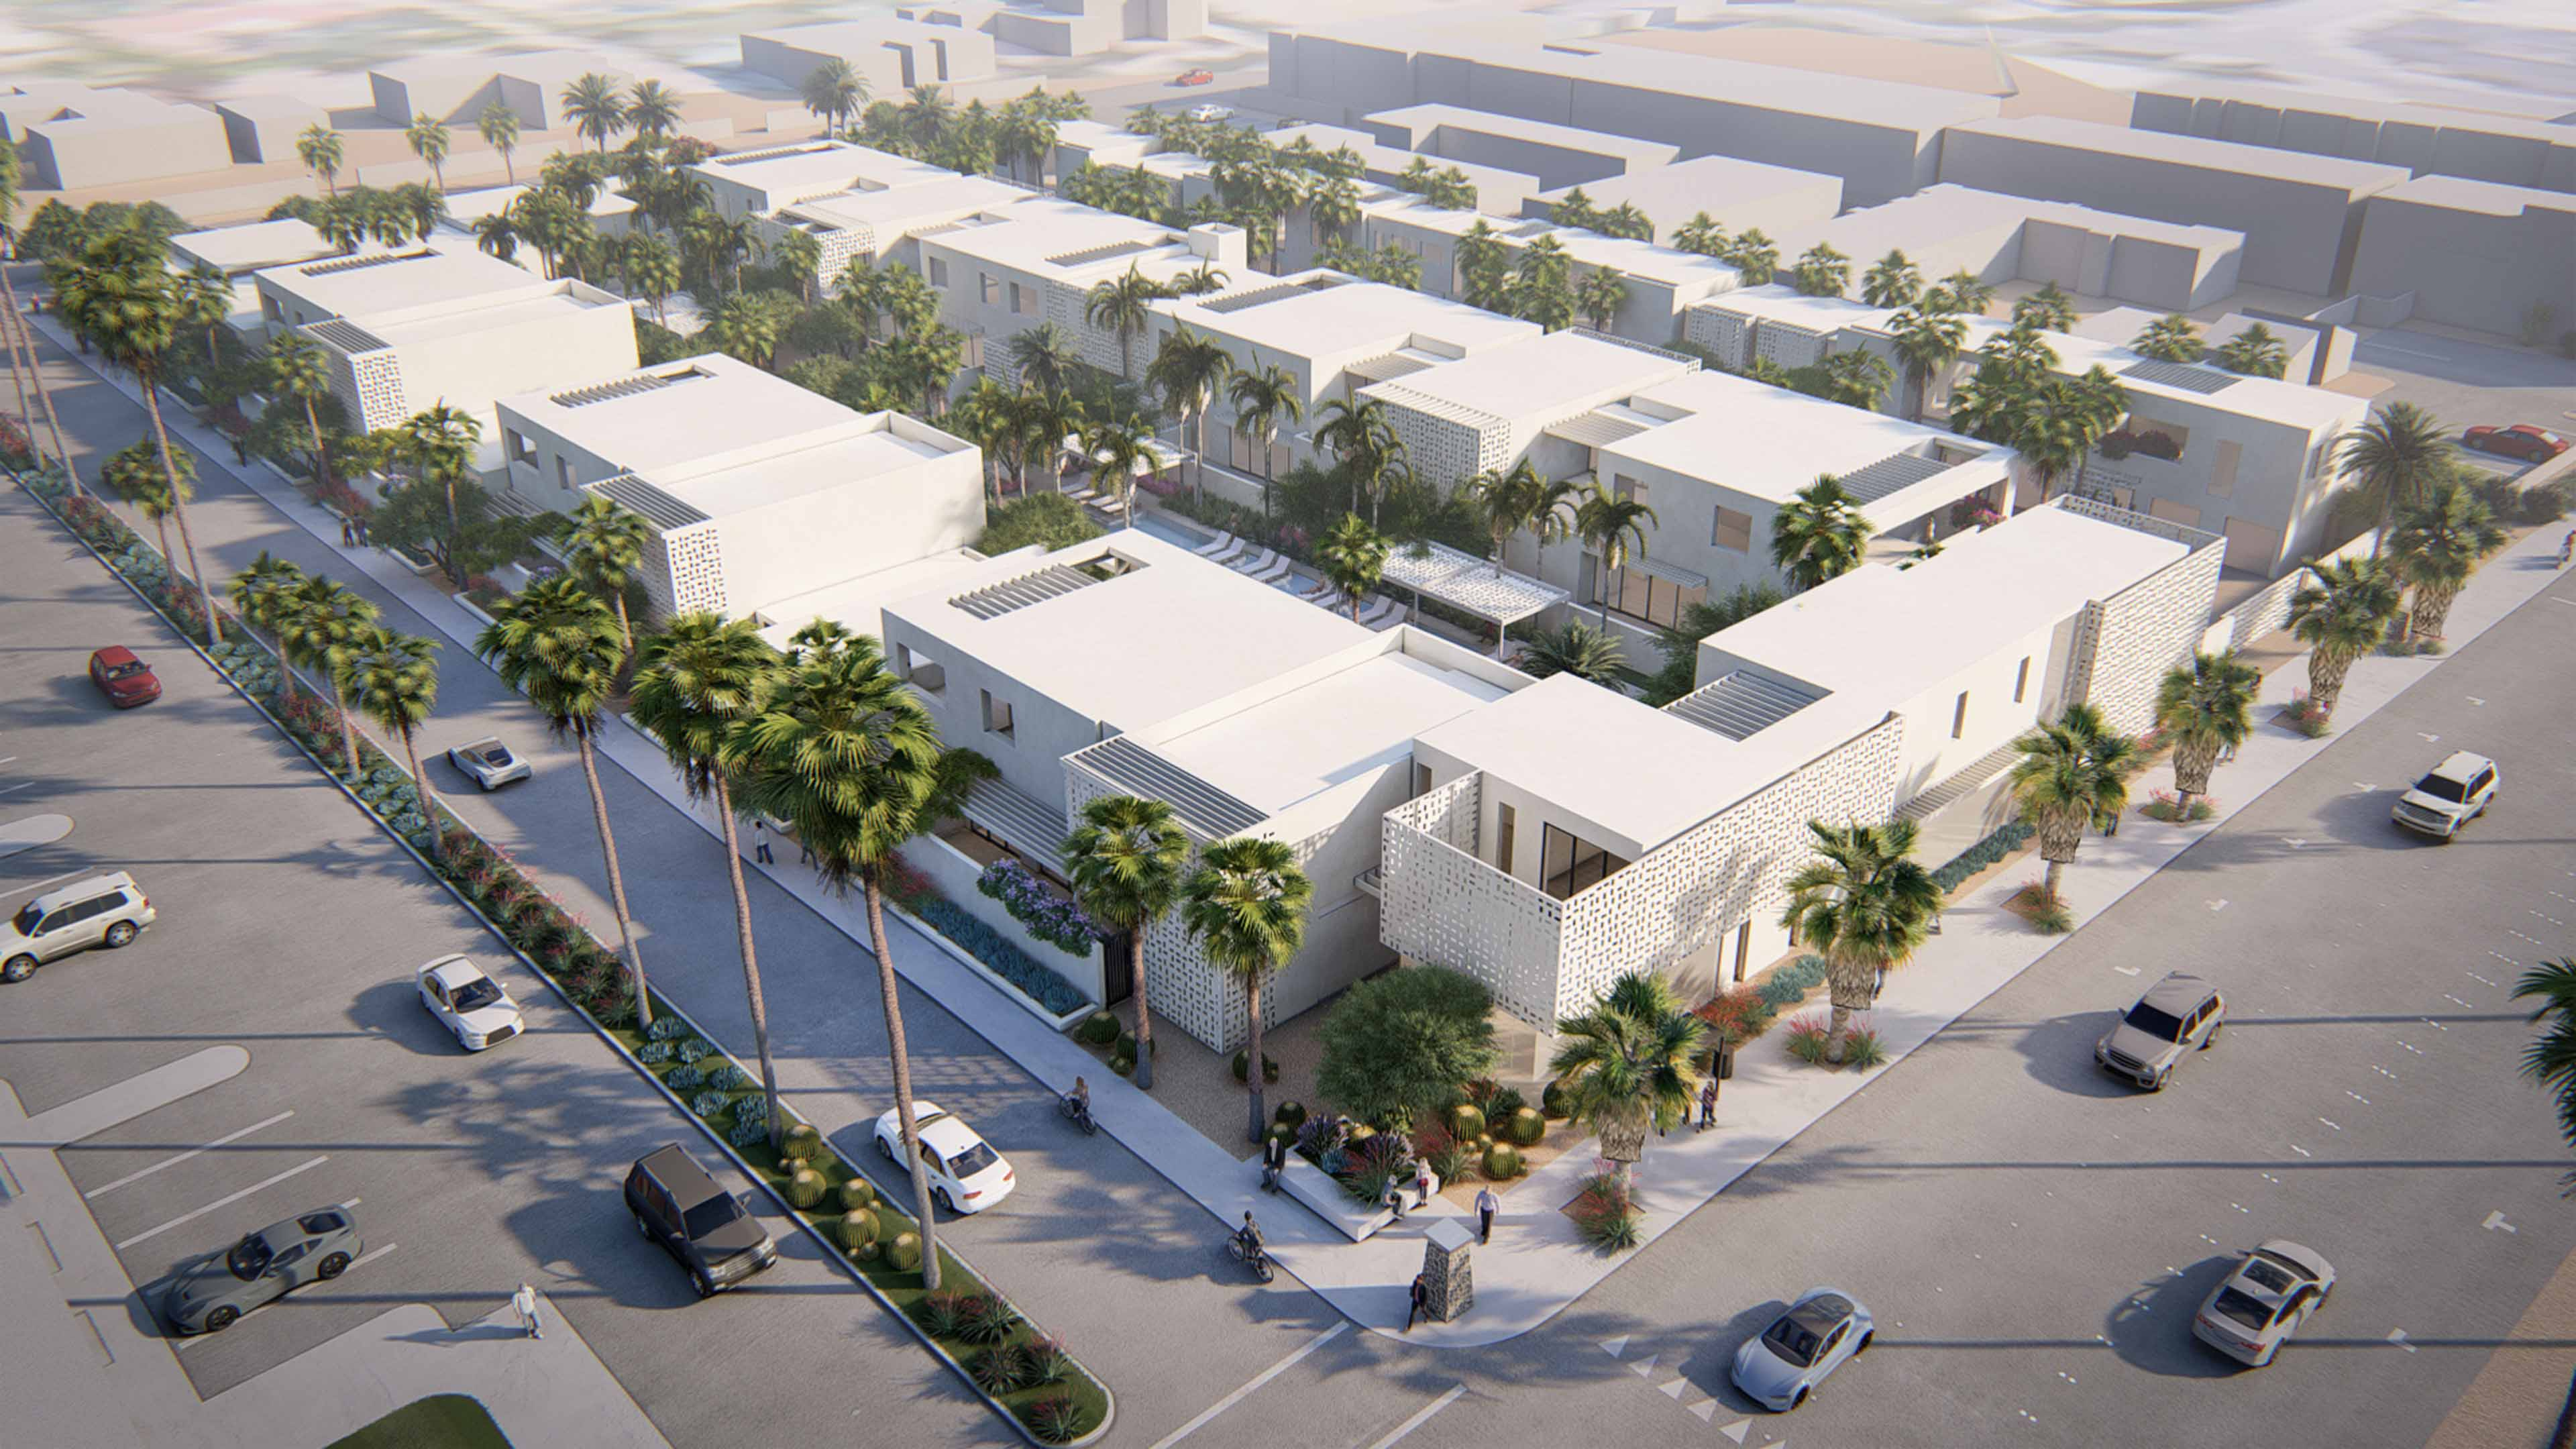 Aerial shot of the Palm Canyon buildings with palm trees